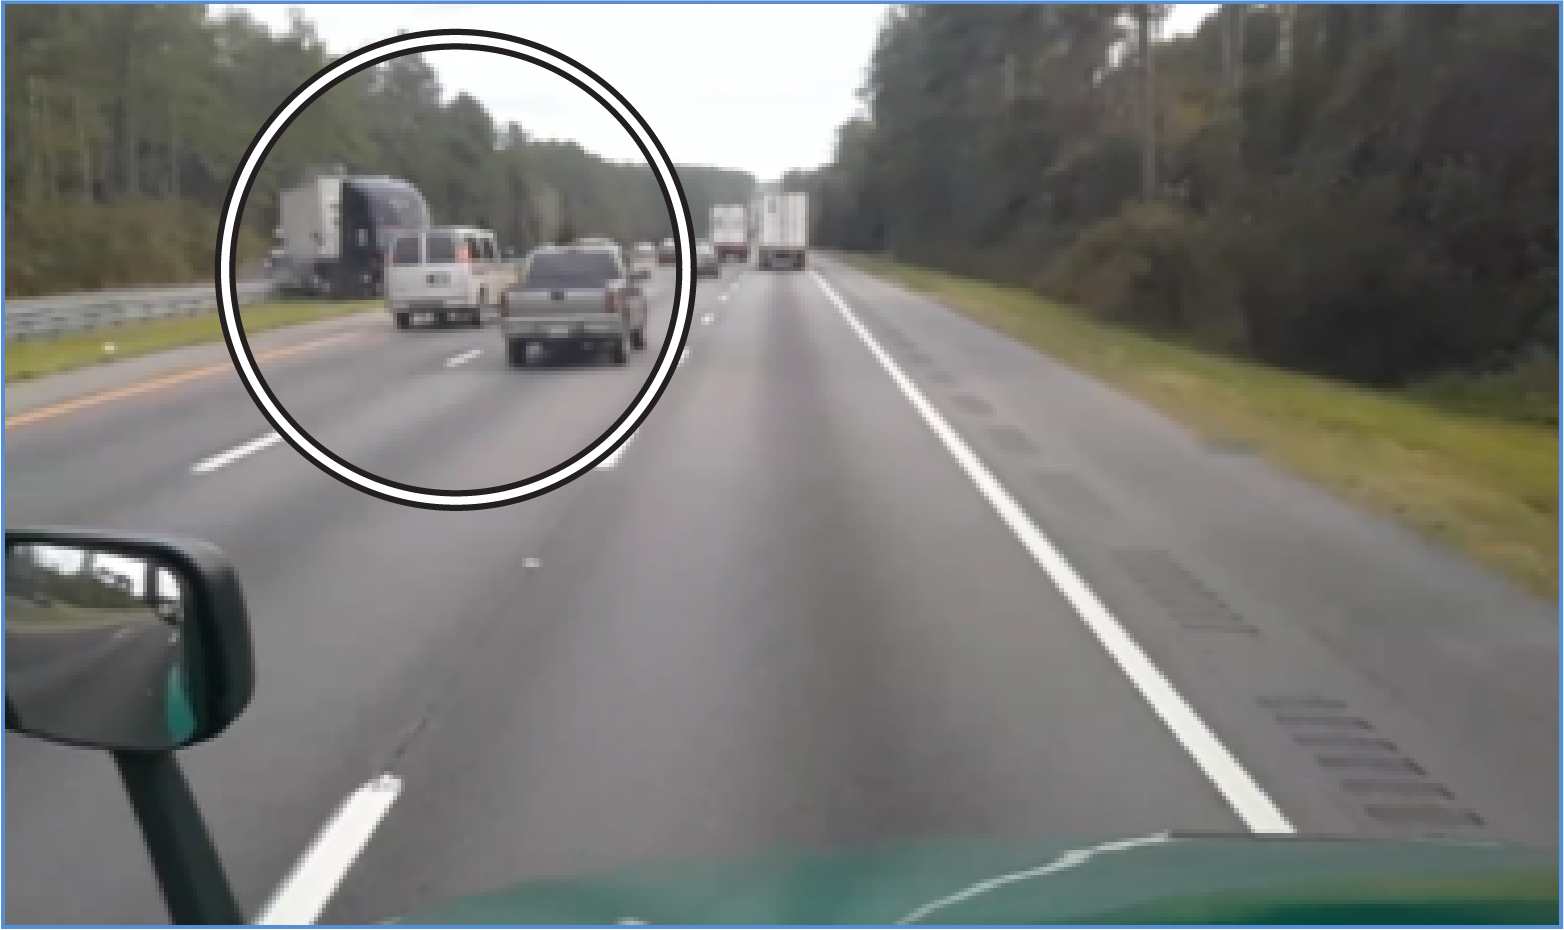 Screen shot from Garmin forward-facing video camera, showing the 2016 Freightliner entering southbound lanes, at upper left.